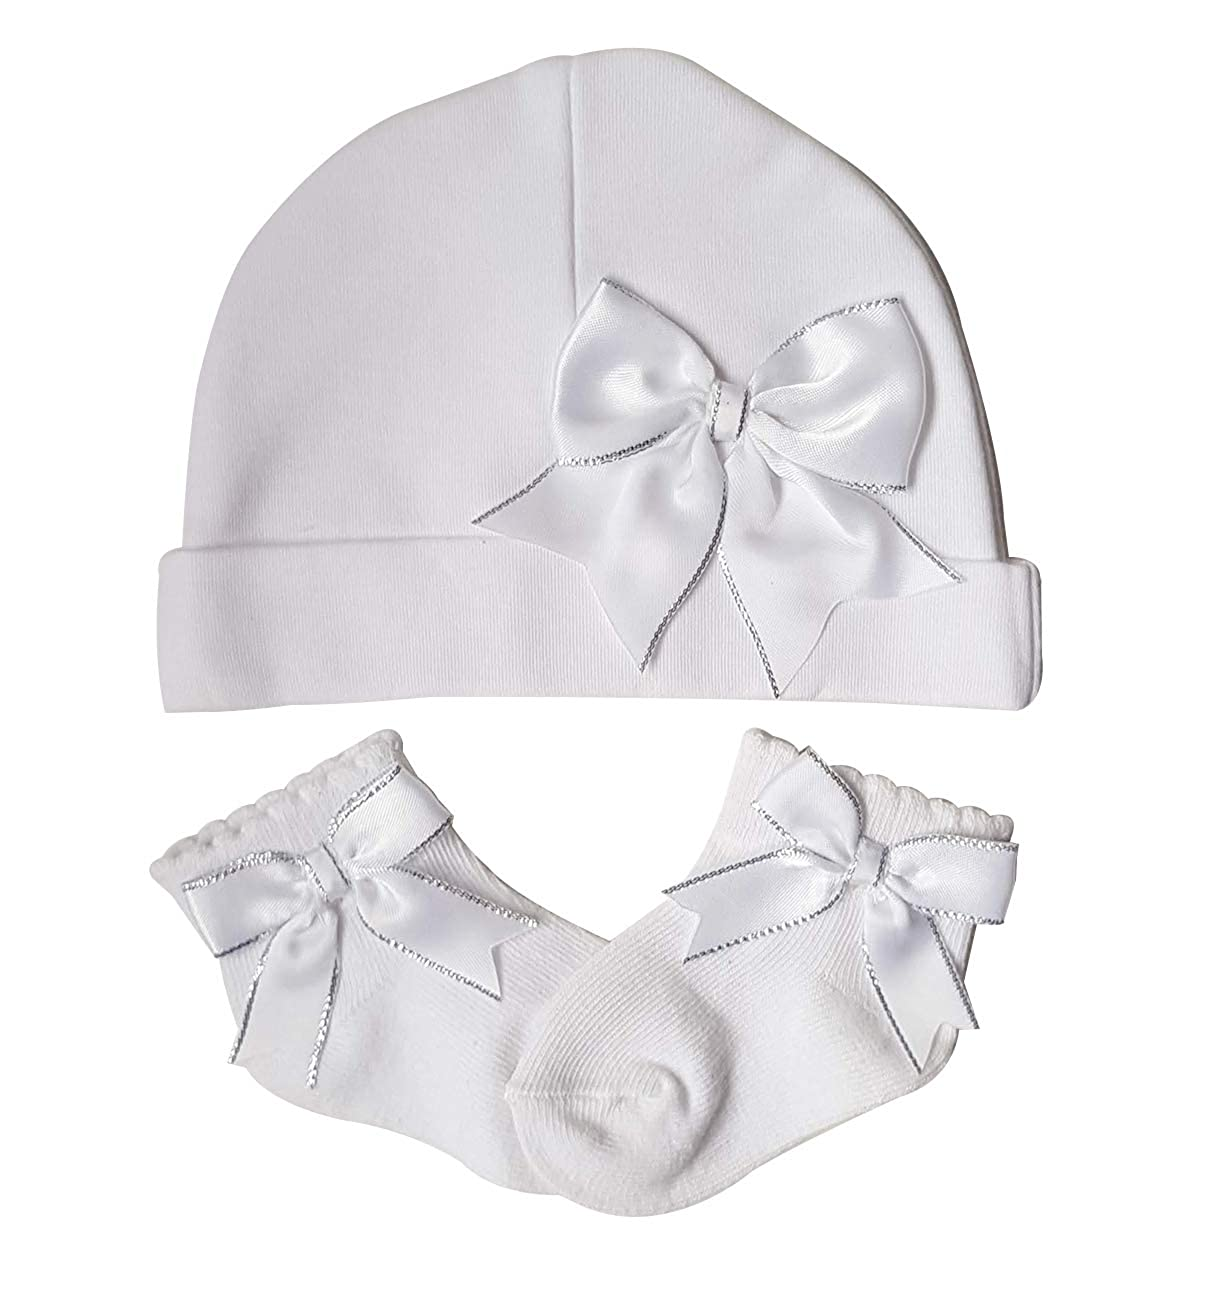 Soft Touch Baby Girl Bow Cotton Hat and Sock Gift Set Pink White 0-6 Months (3-6 Months, White)